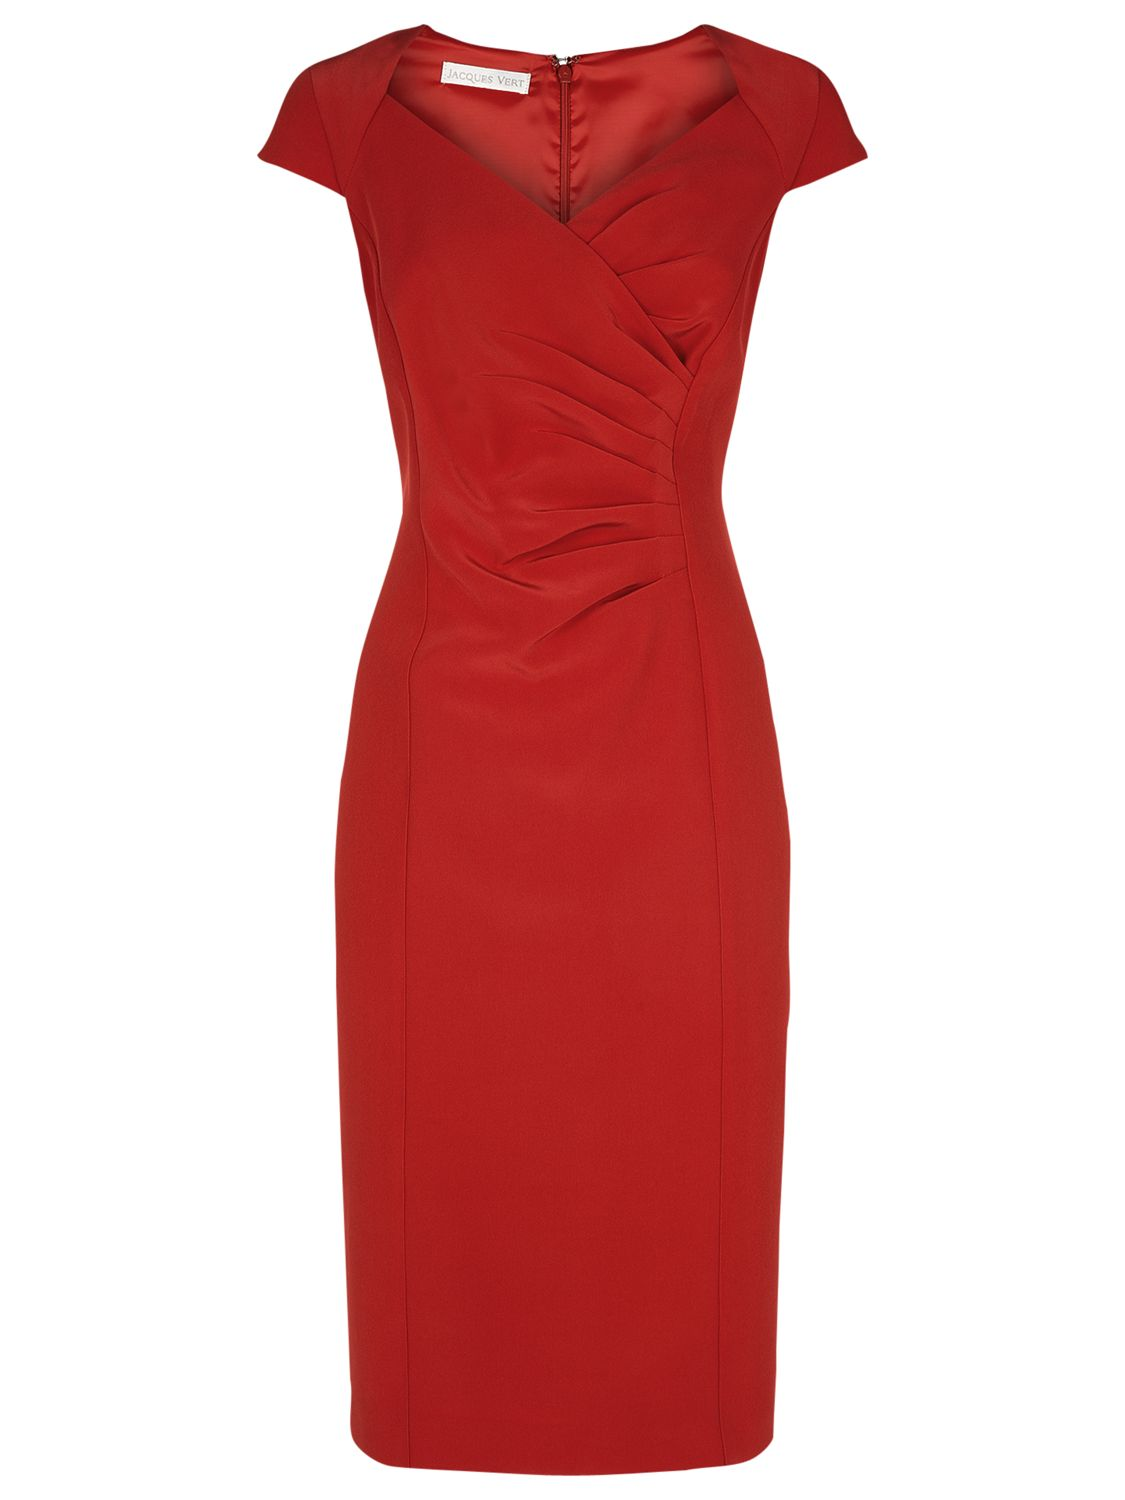 jacques vert satin back crepe dress scarlet, jacques, vert, satin, back, crepe, dress, scarlet, jacques vert, 16|18|20|10, clearance, womenswear offers, womens dresses offers, special offers, women, plus size, inactive womenswear, new reductions, womens dresses, 1741428